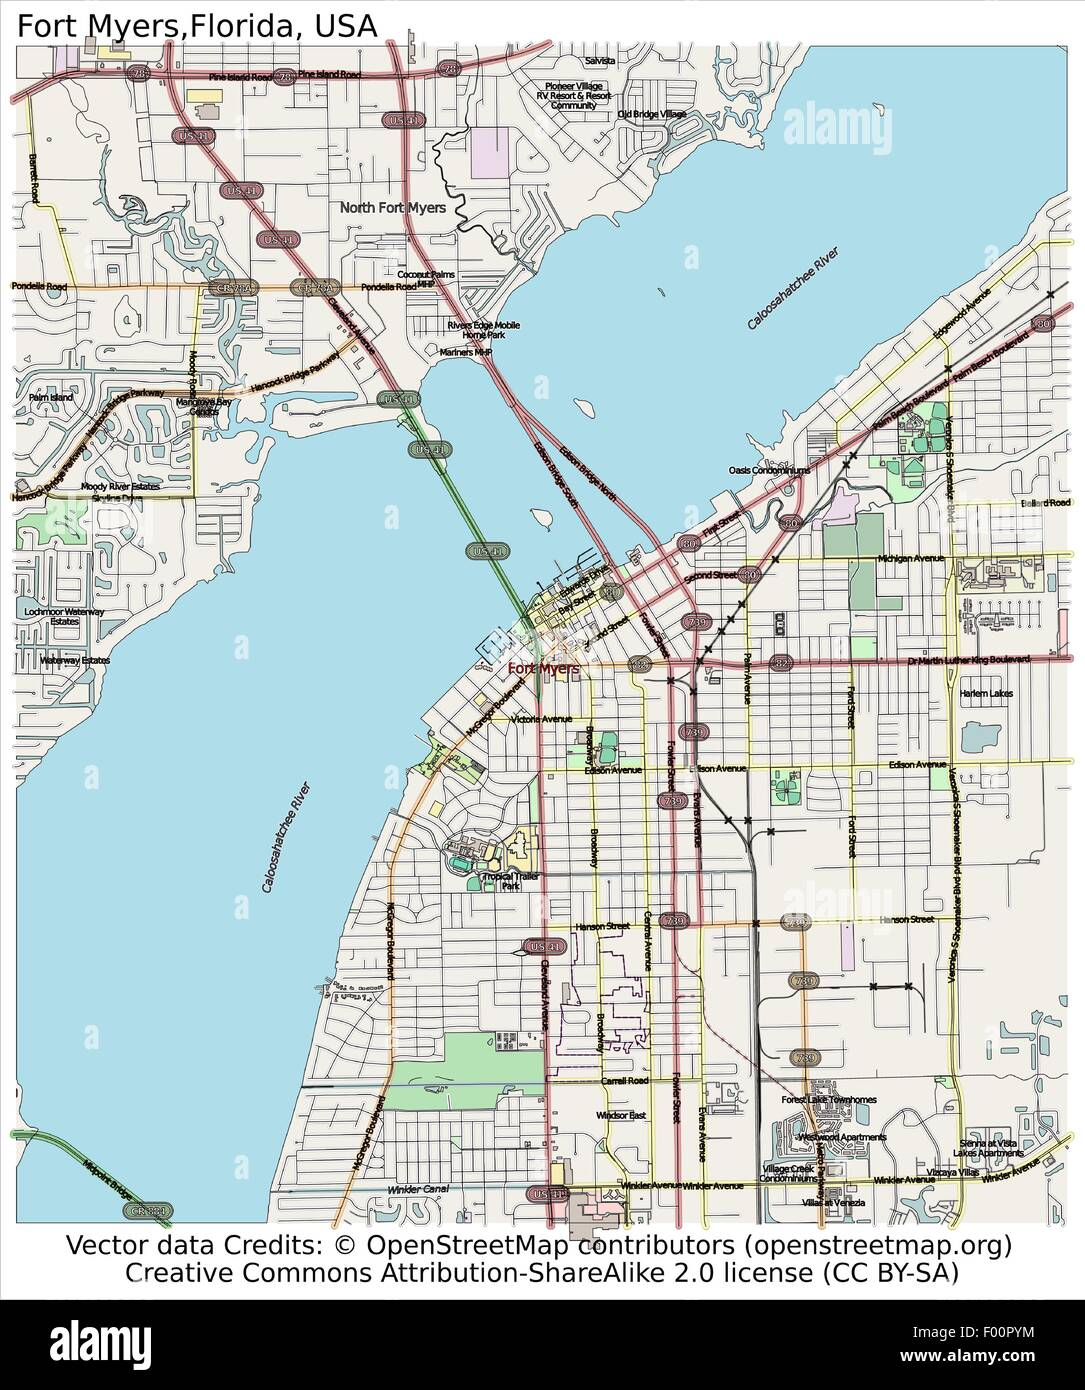 Map Of Fort Myers Florida.Fort Myers Florida Usa Country City Island State Location Map Stock